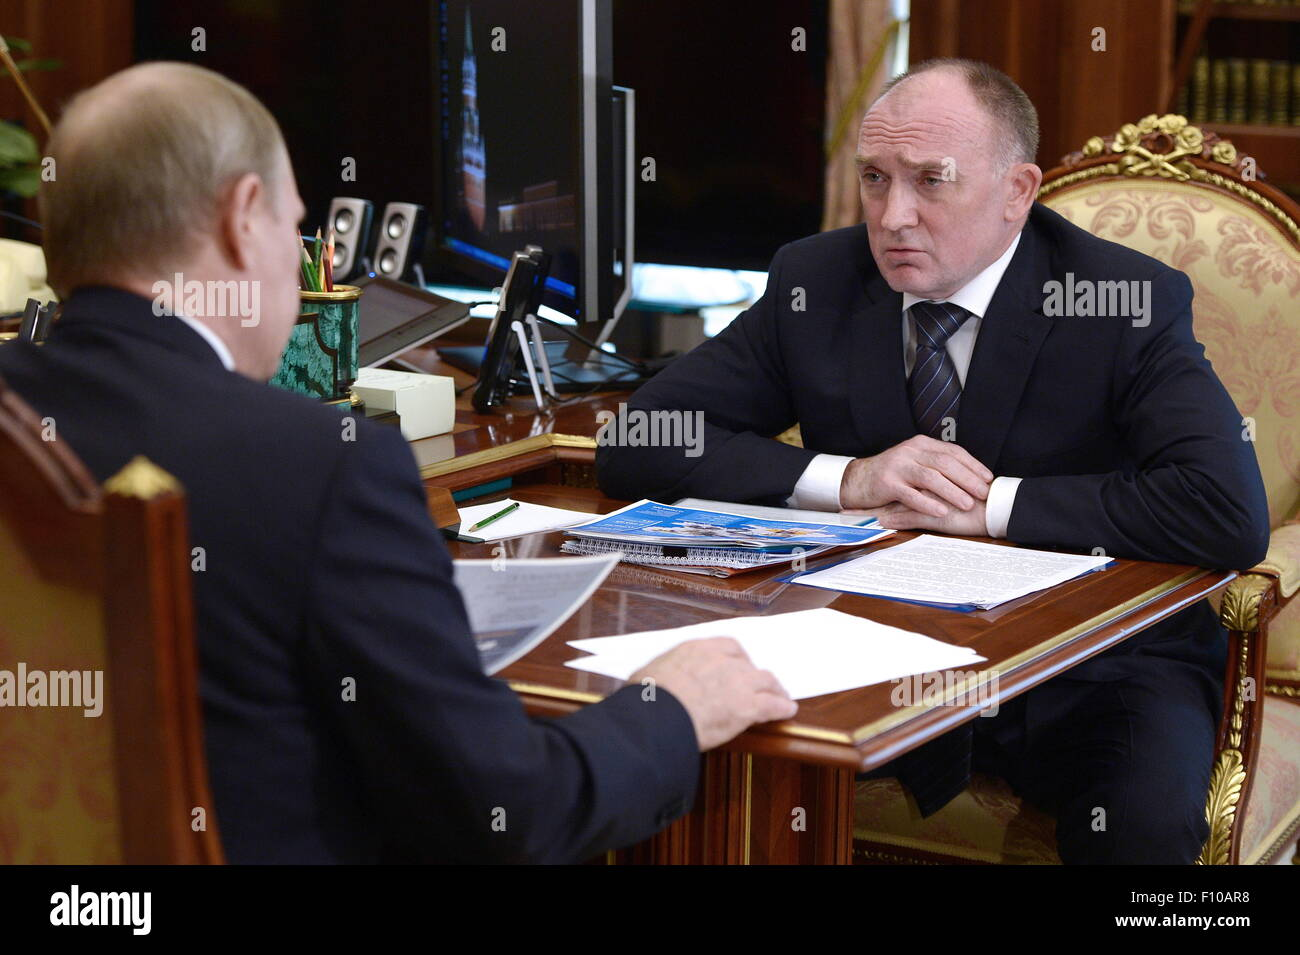 Moscow, Russia. 24th Aug, 2015. Russia's President Vladimir Putin (L) and Chelyabinsk Region Governor Boris - Stock Image